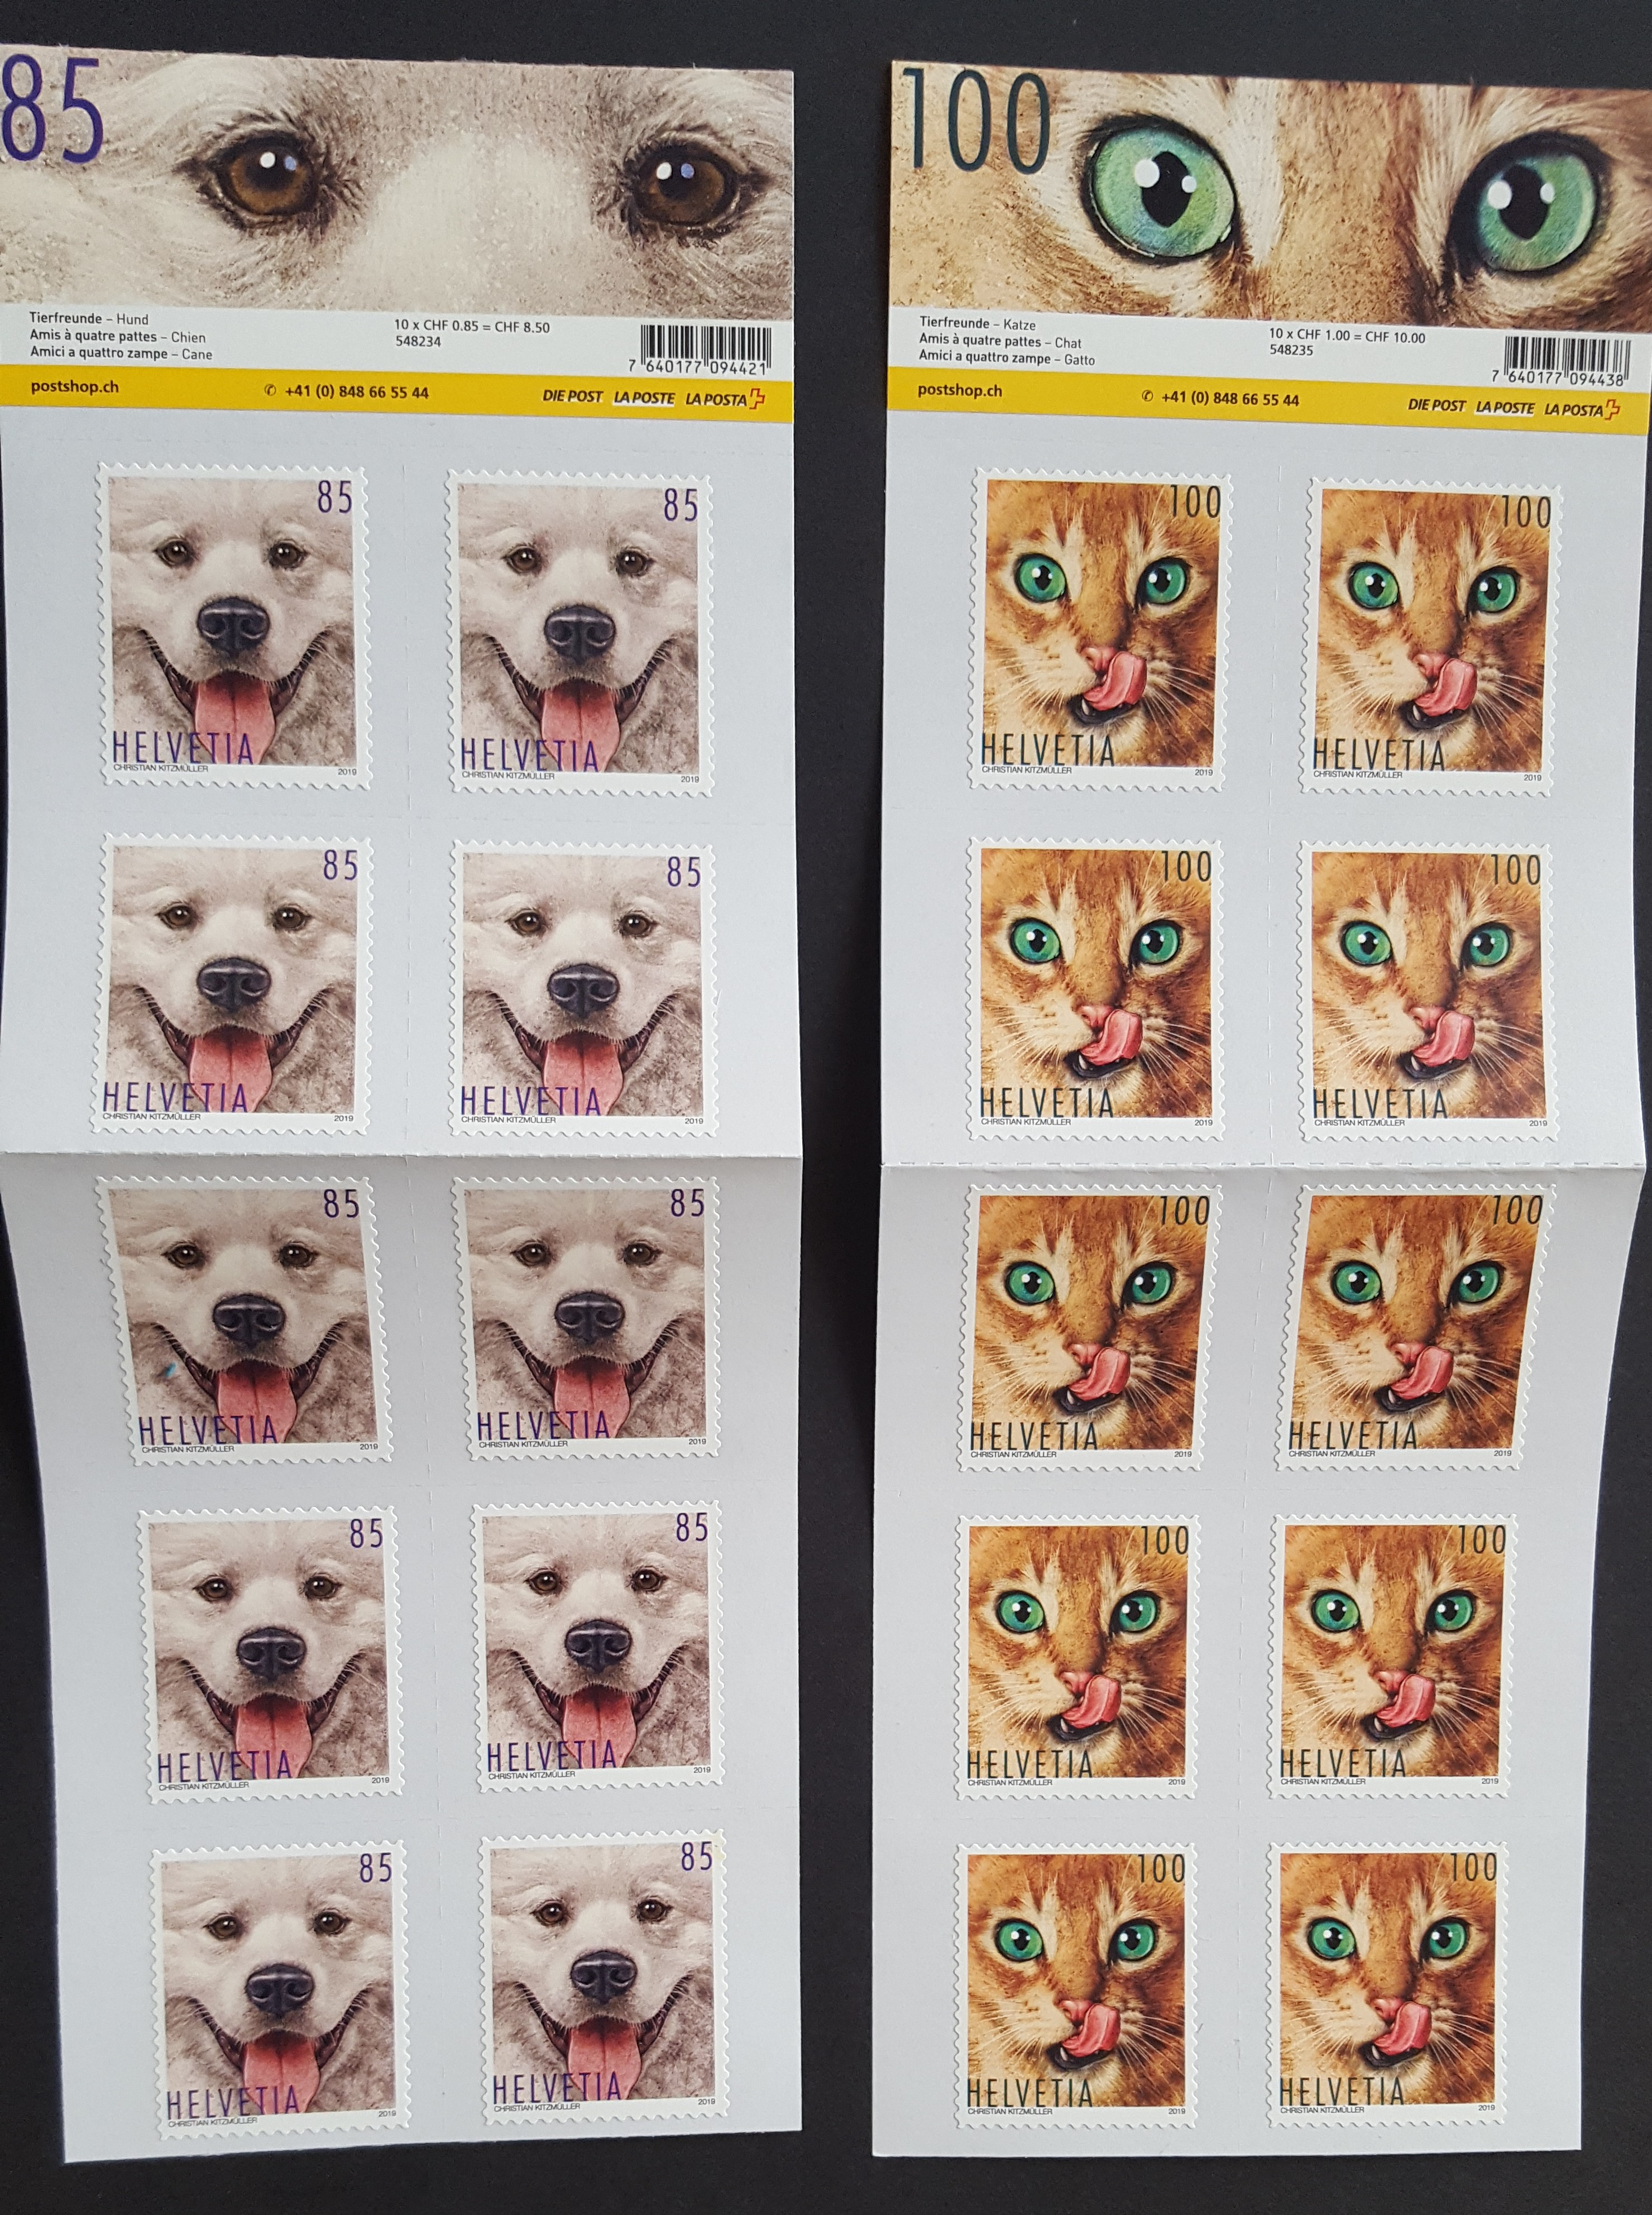 Switzerland 2019 Pets 4v Sheetlets of 10 - MNH Cat Dog Horse